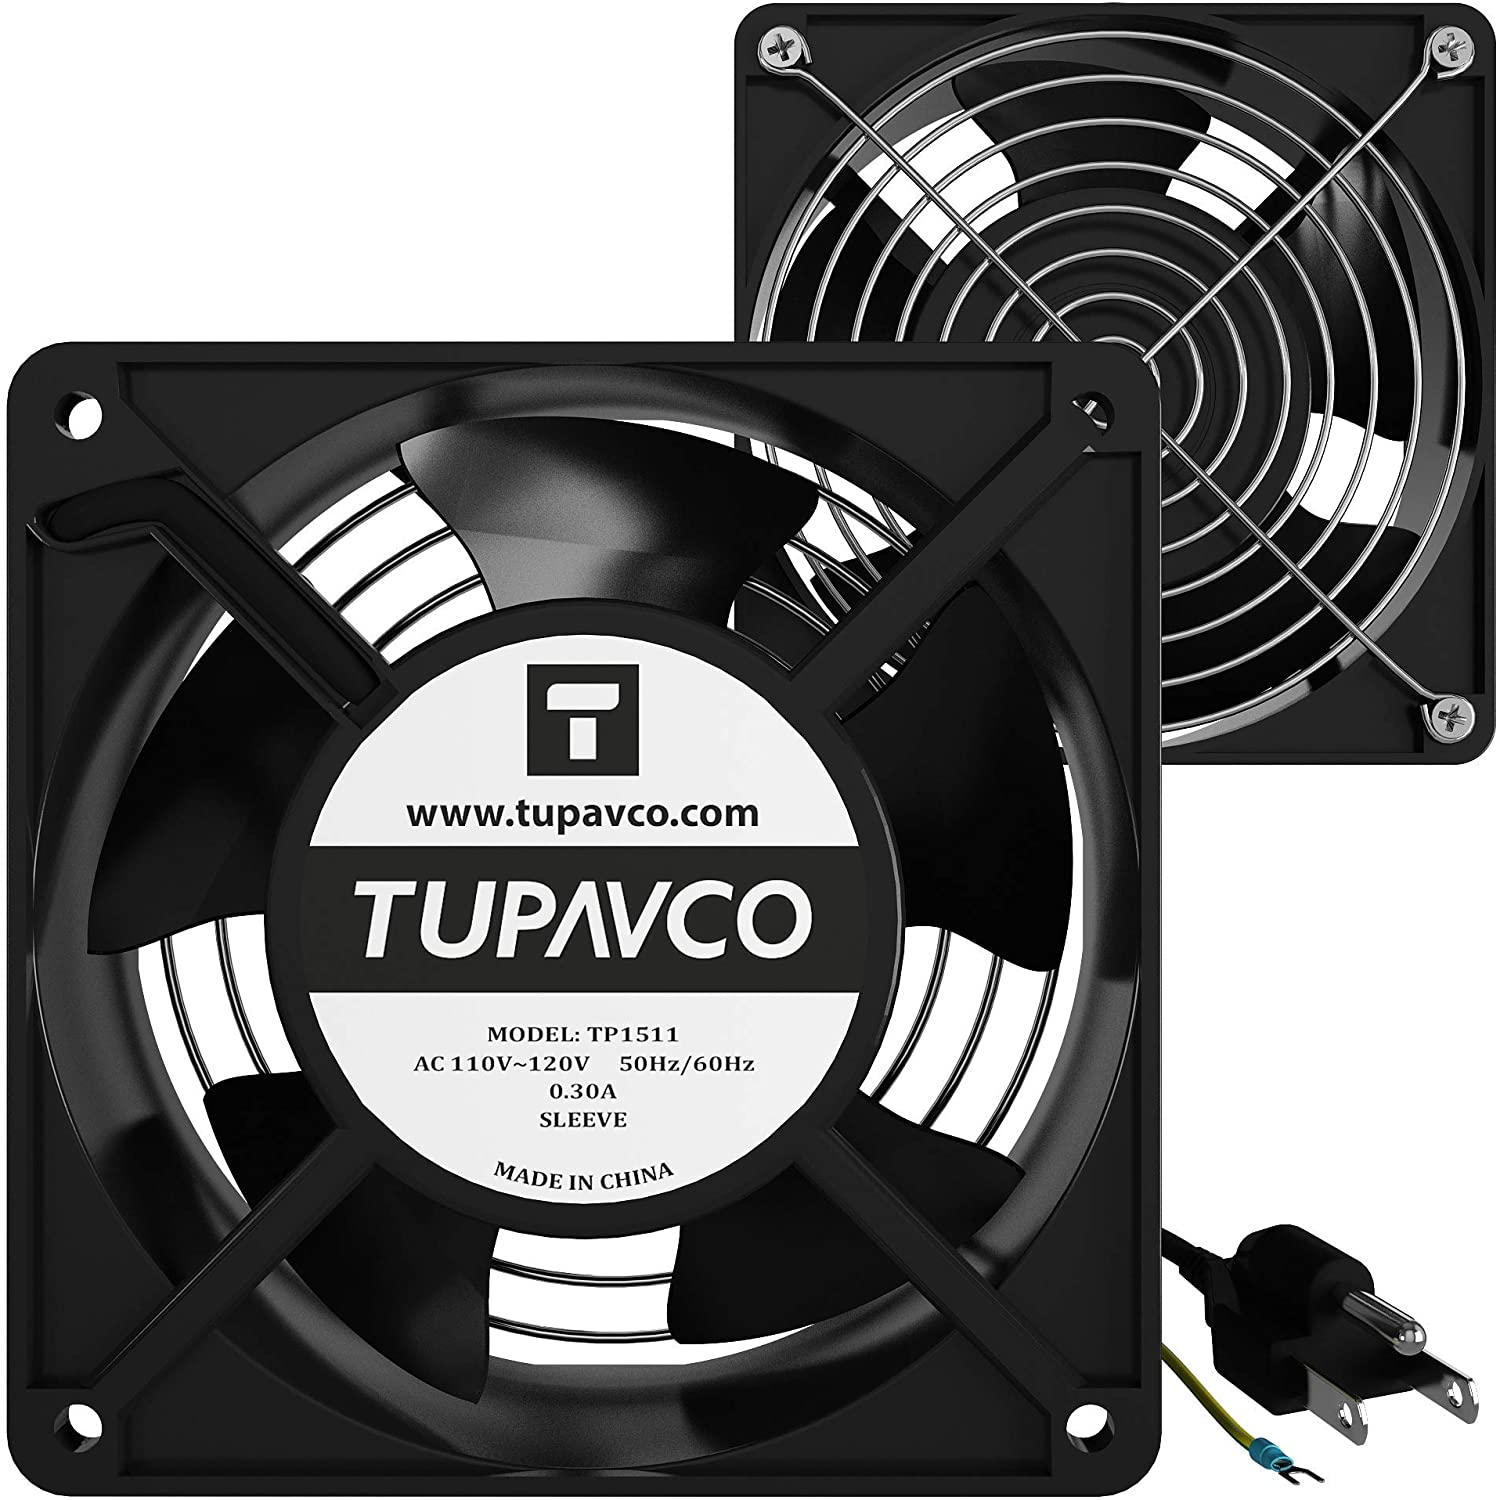 Network Cabinet Fan (Dual 2pc Kit for Server Rack Cooling) Pair of Ultra Quiet Roof Rackmount Muffin Fans 120mm 4in Noise Level 40dBa Steel Frame Ventilation with 110V AC/Ground Cable -Tupavco TP1511